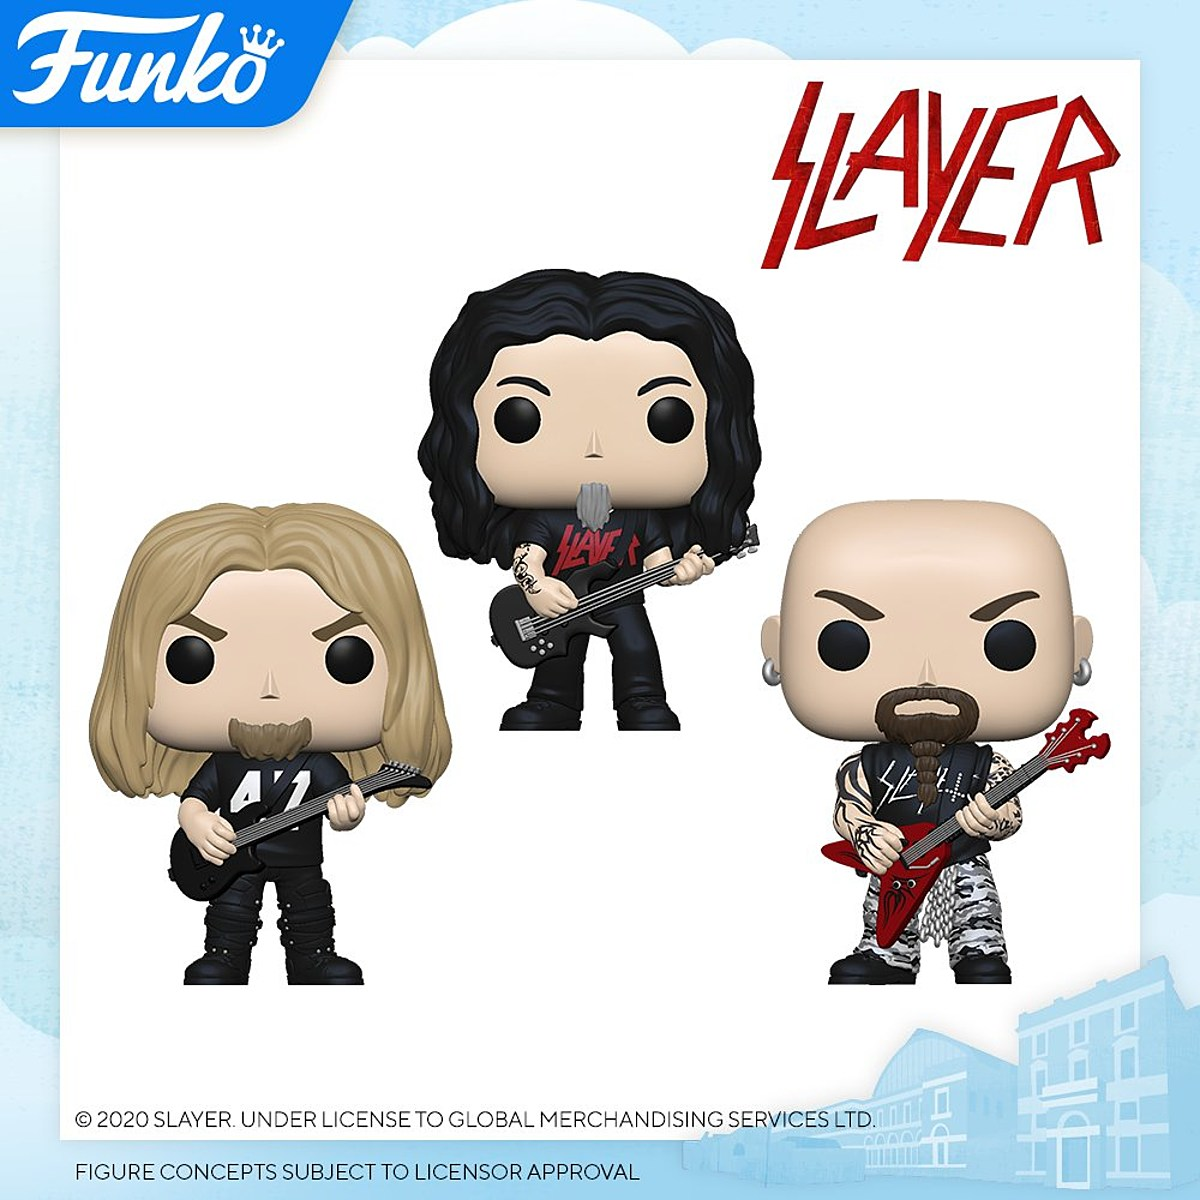 Slayer, Motorhead, Willie Nelson more becoming Funko Pops